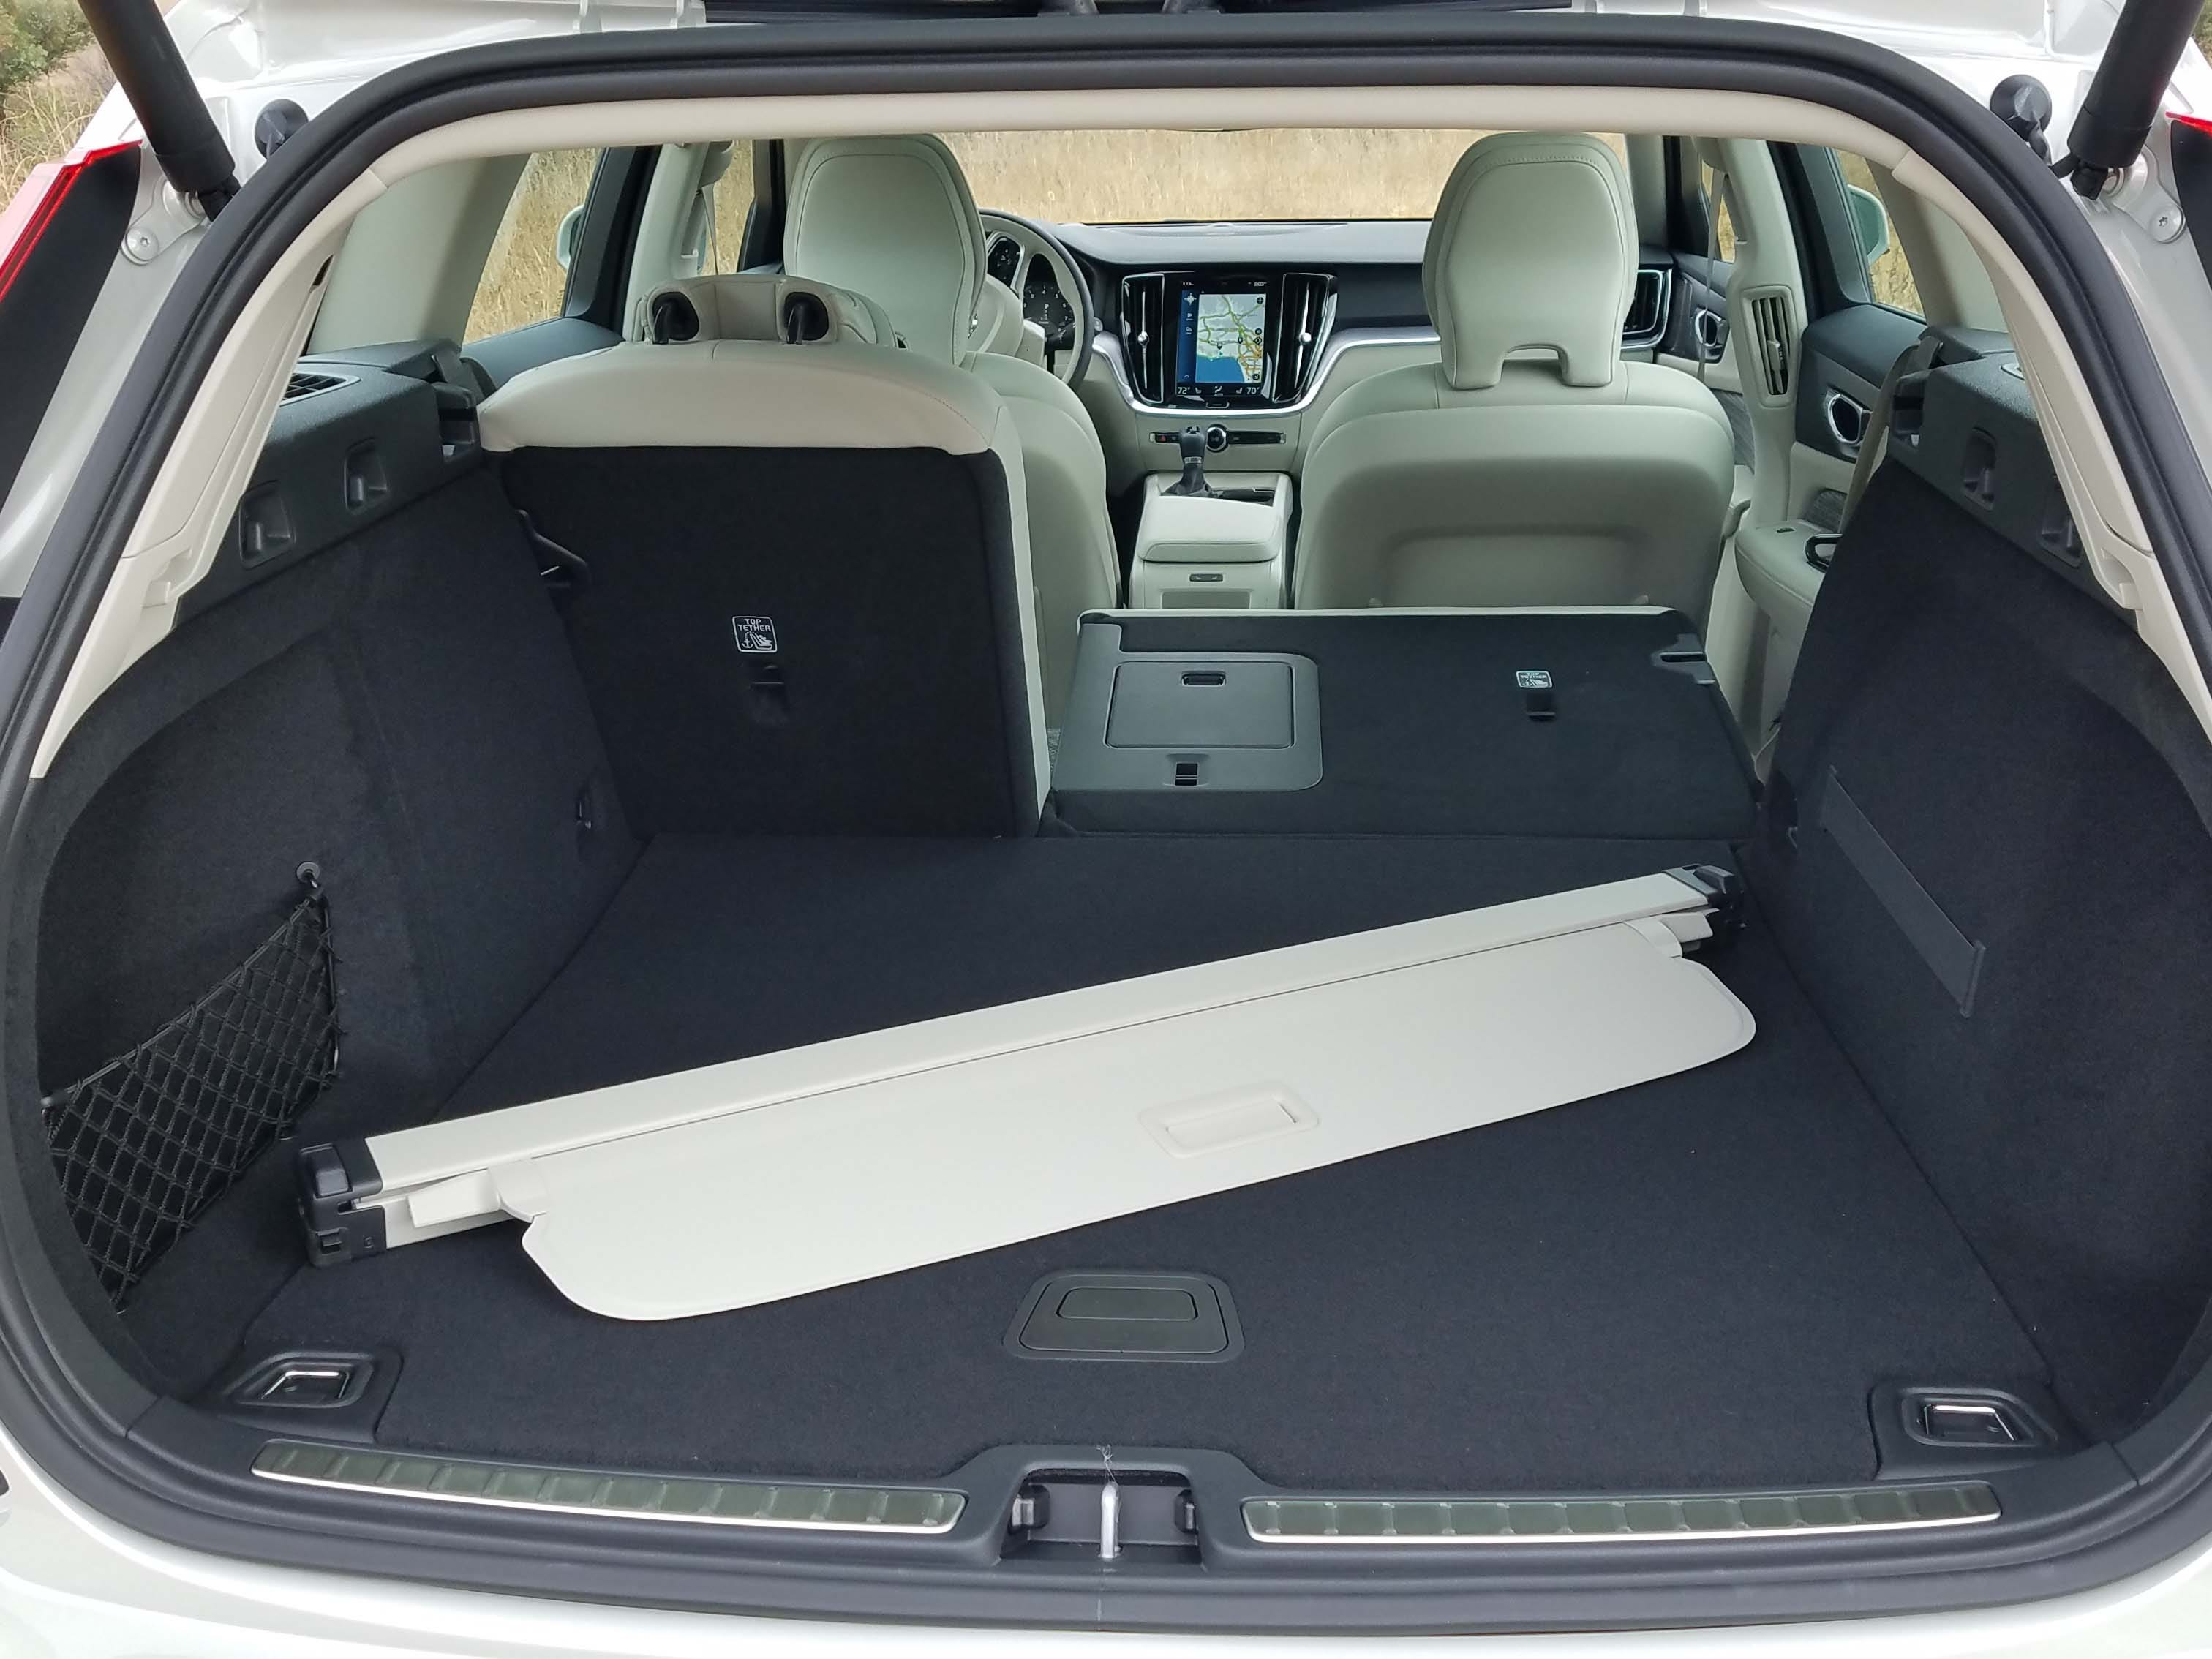 The 2019 Volvo V60 wagon is not only lovelier than the X60 SUV — it features better utility with more cargo room and better roof access. Just sayin'.